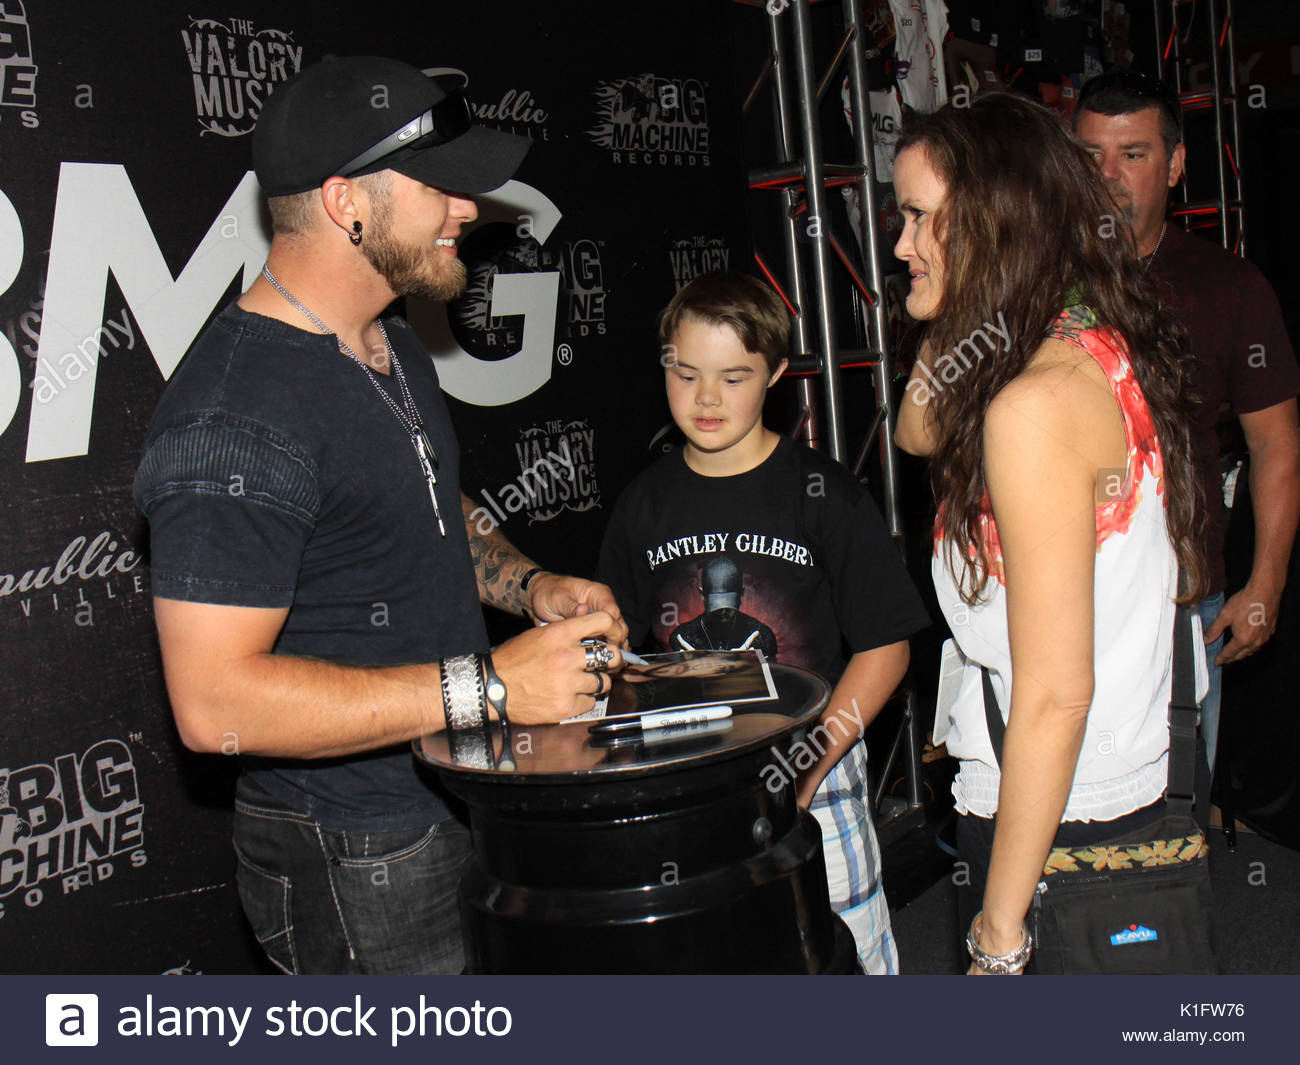 Brantley gilbert country stars and their fans came together at the brantley gilbert country stars and their fans came together at the cma music festival where fans could get autographs pose for photos and meet their m4hsunfo